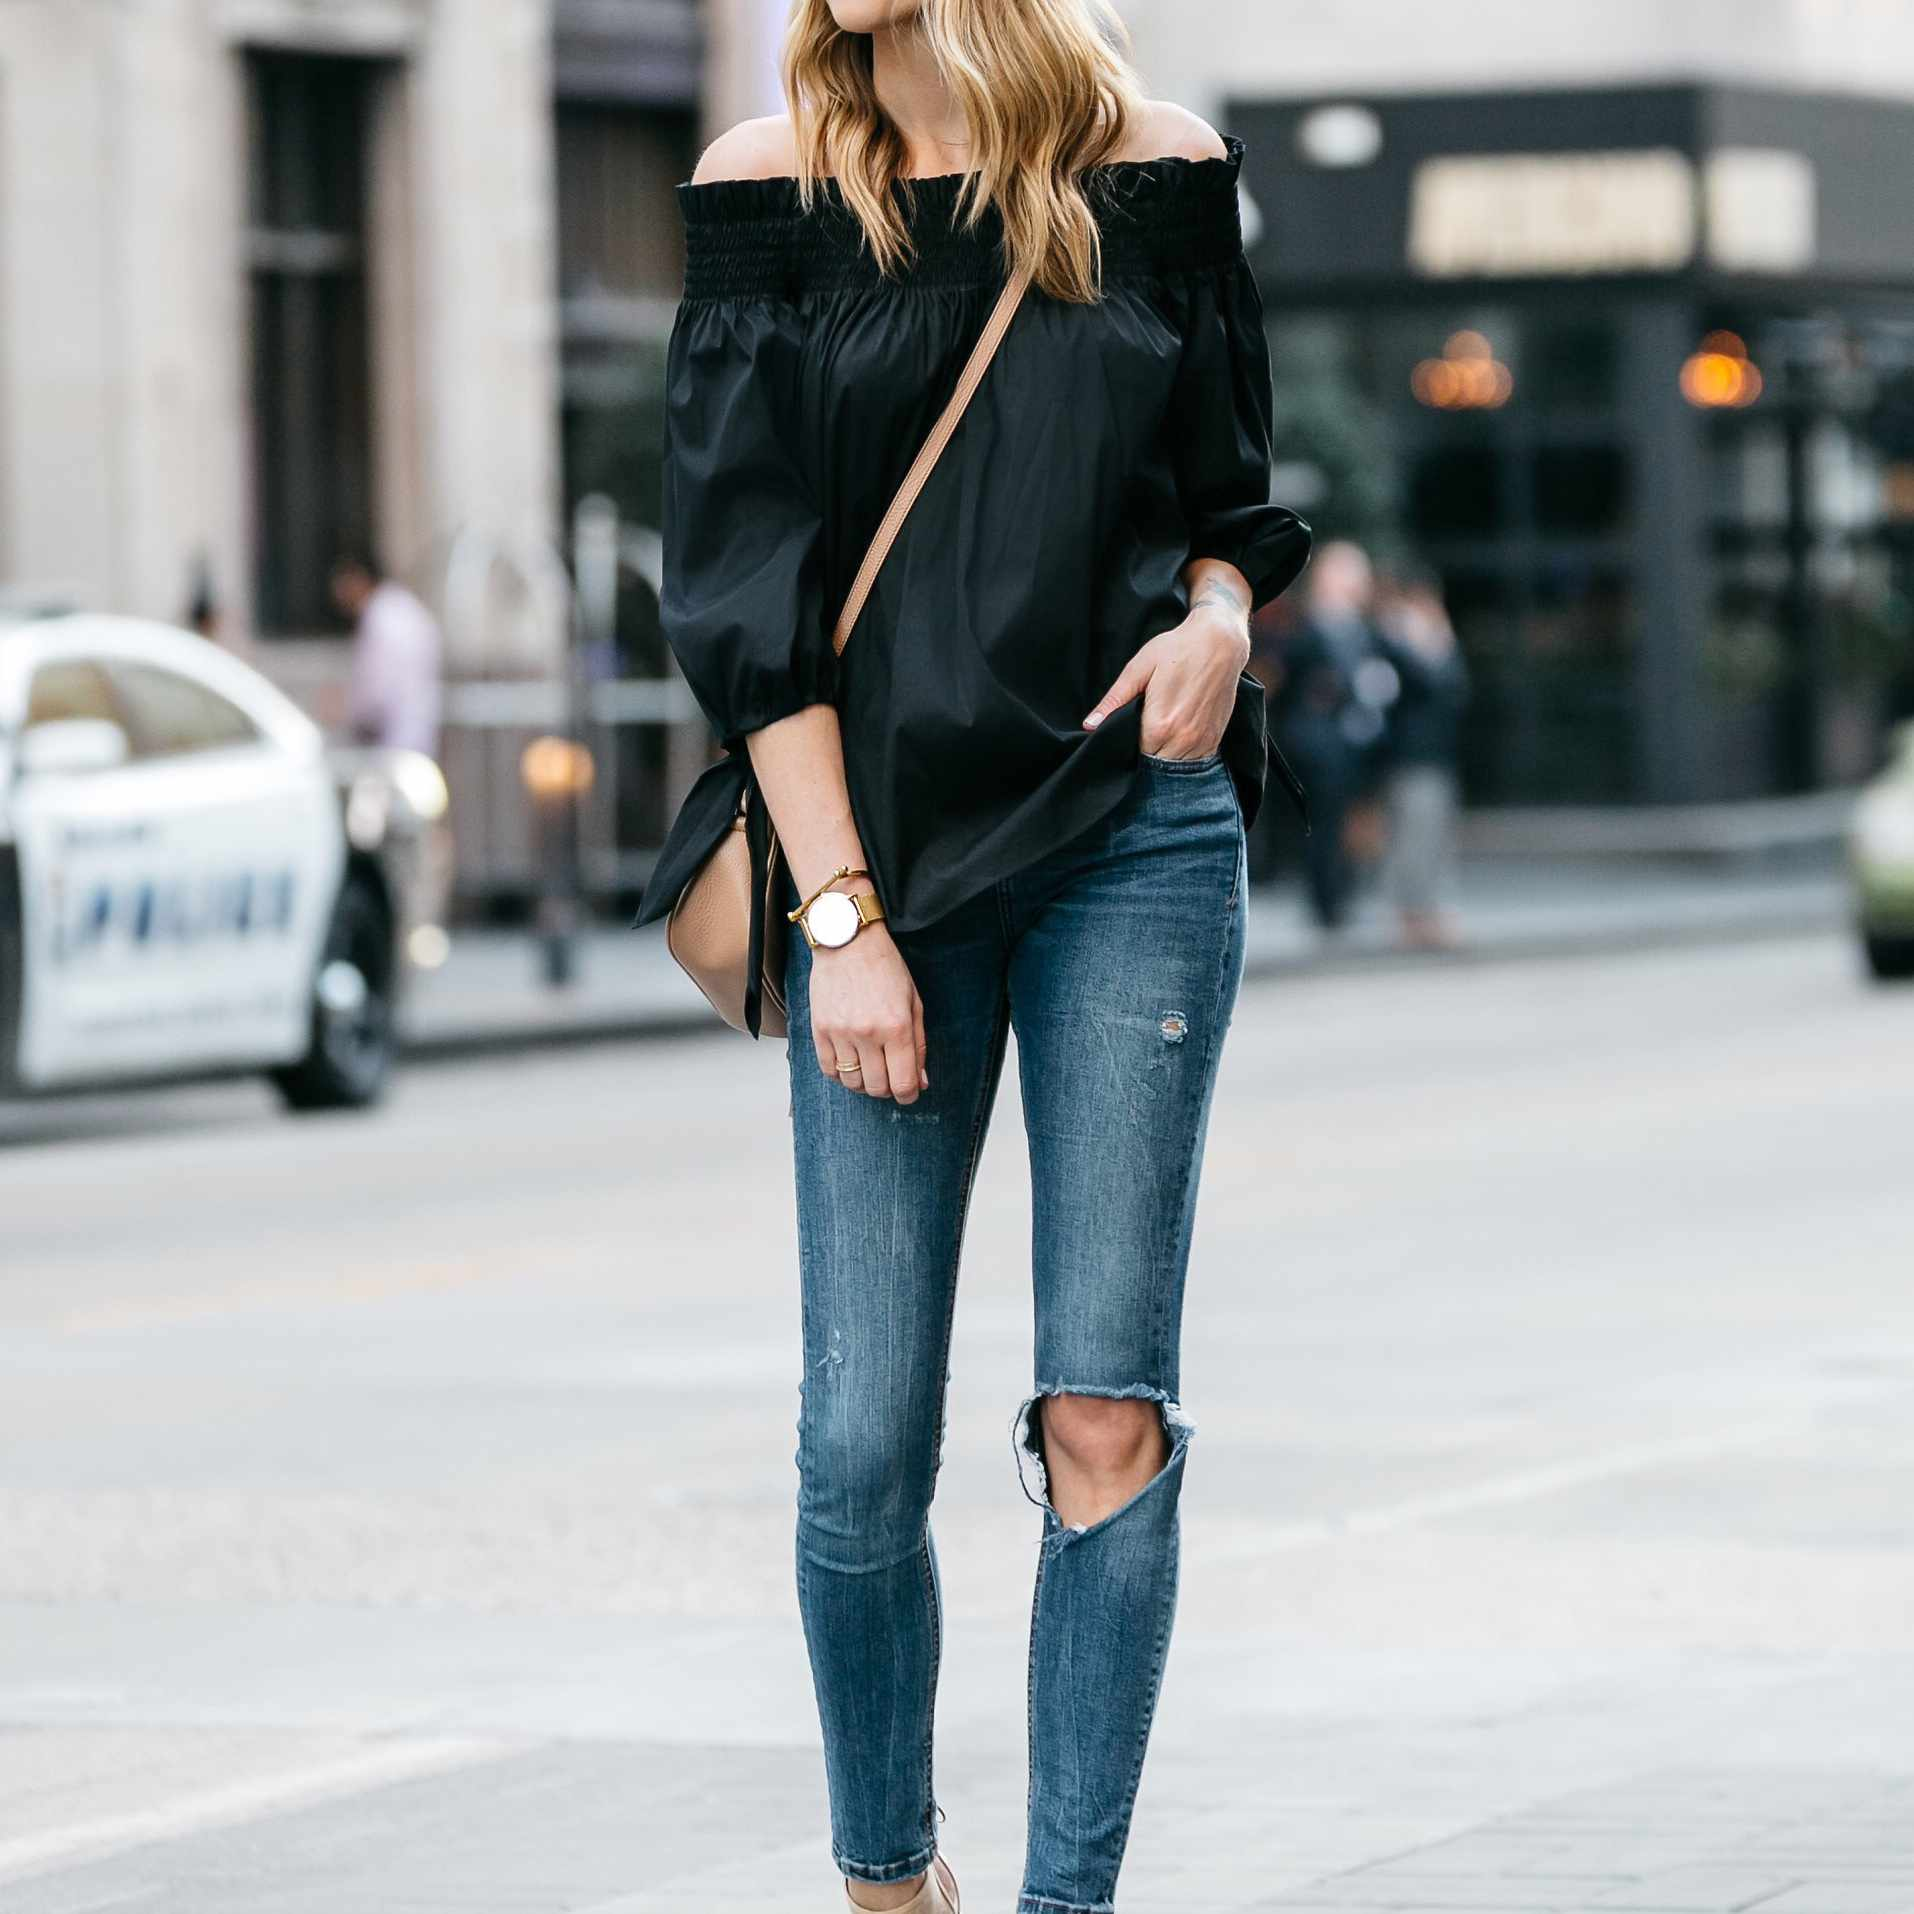 19 Cute Dinner Date Outfit Ideas